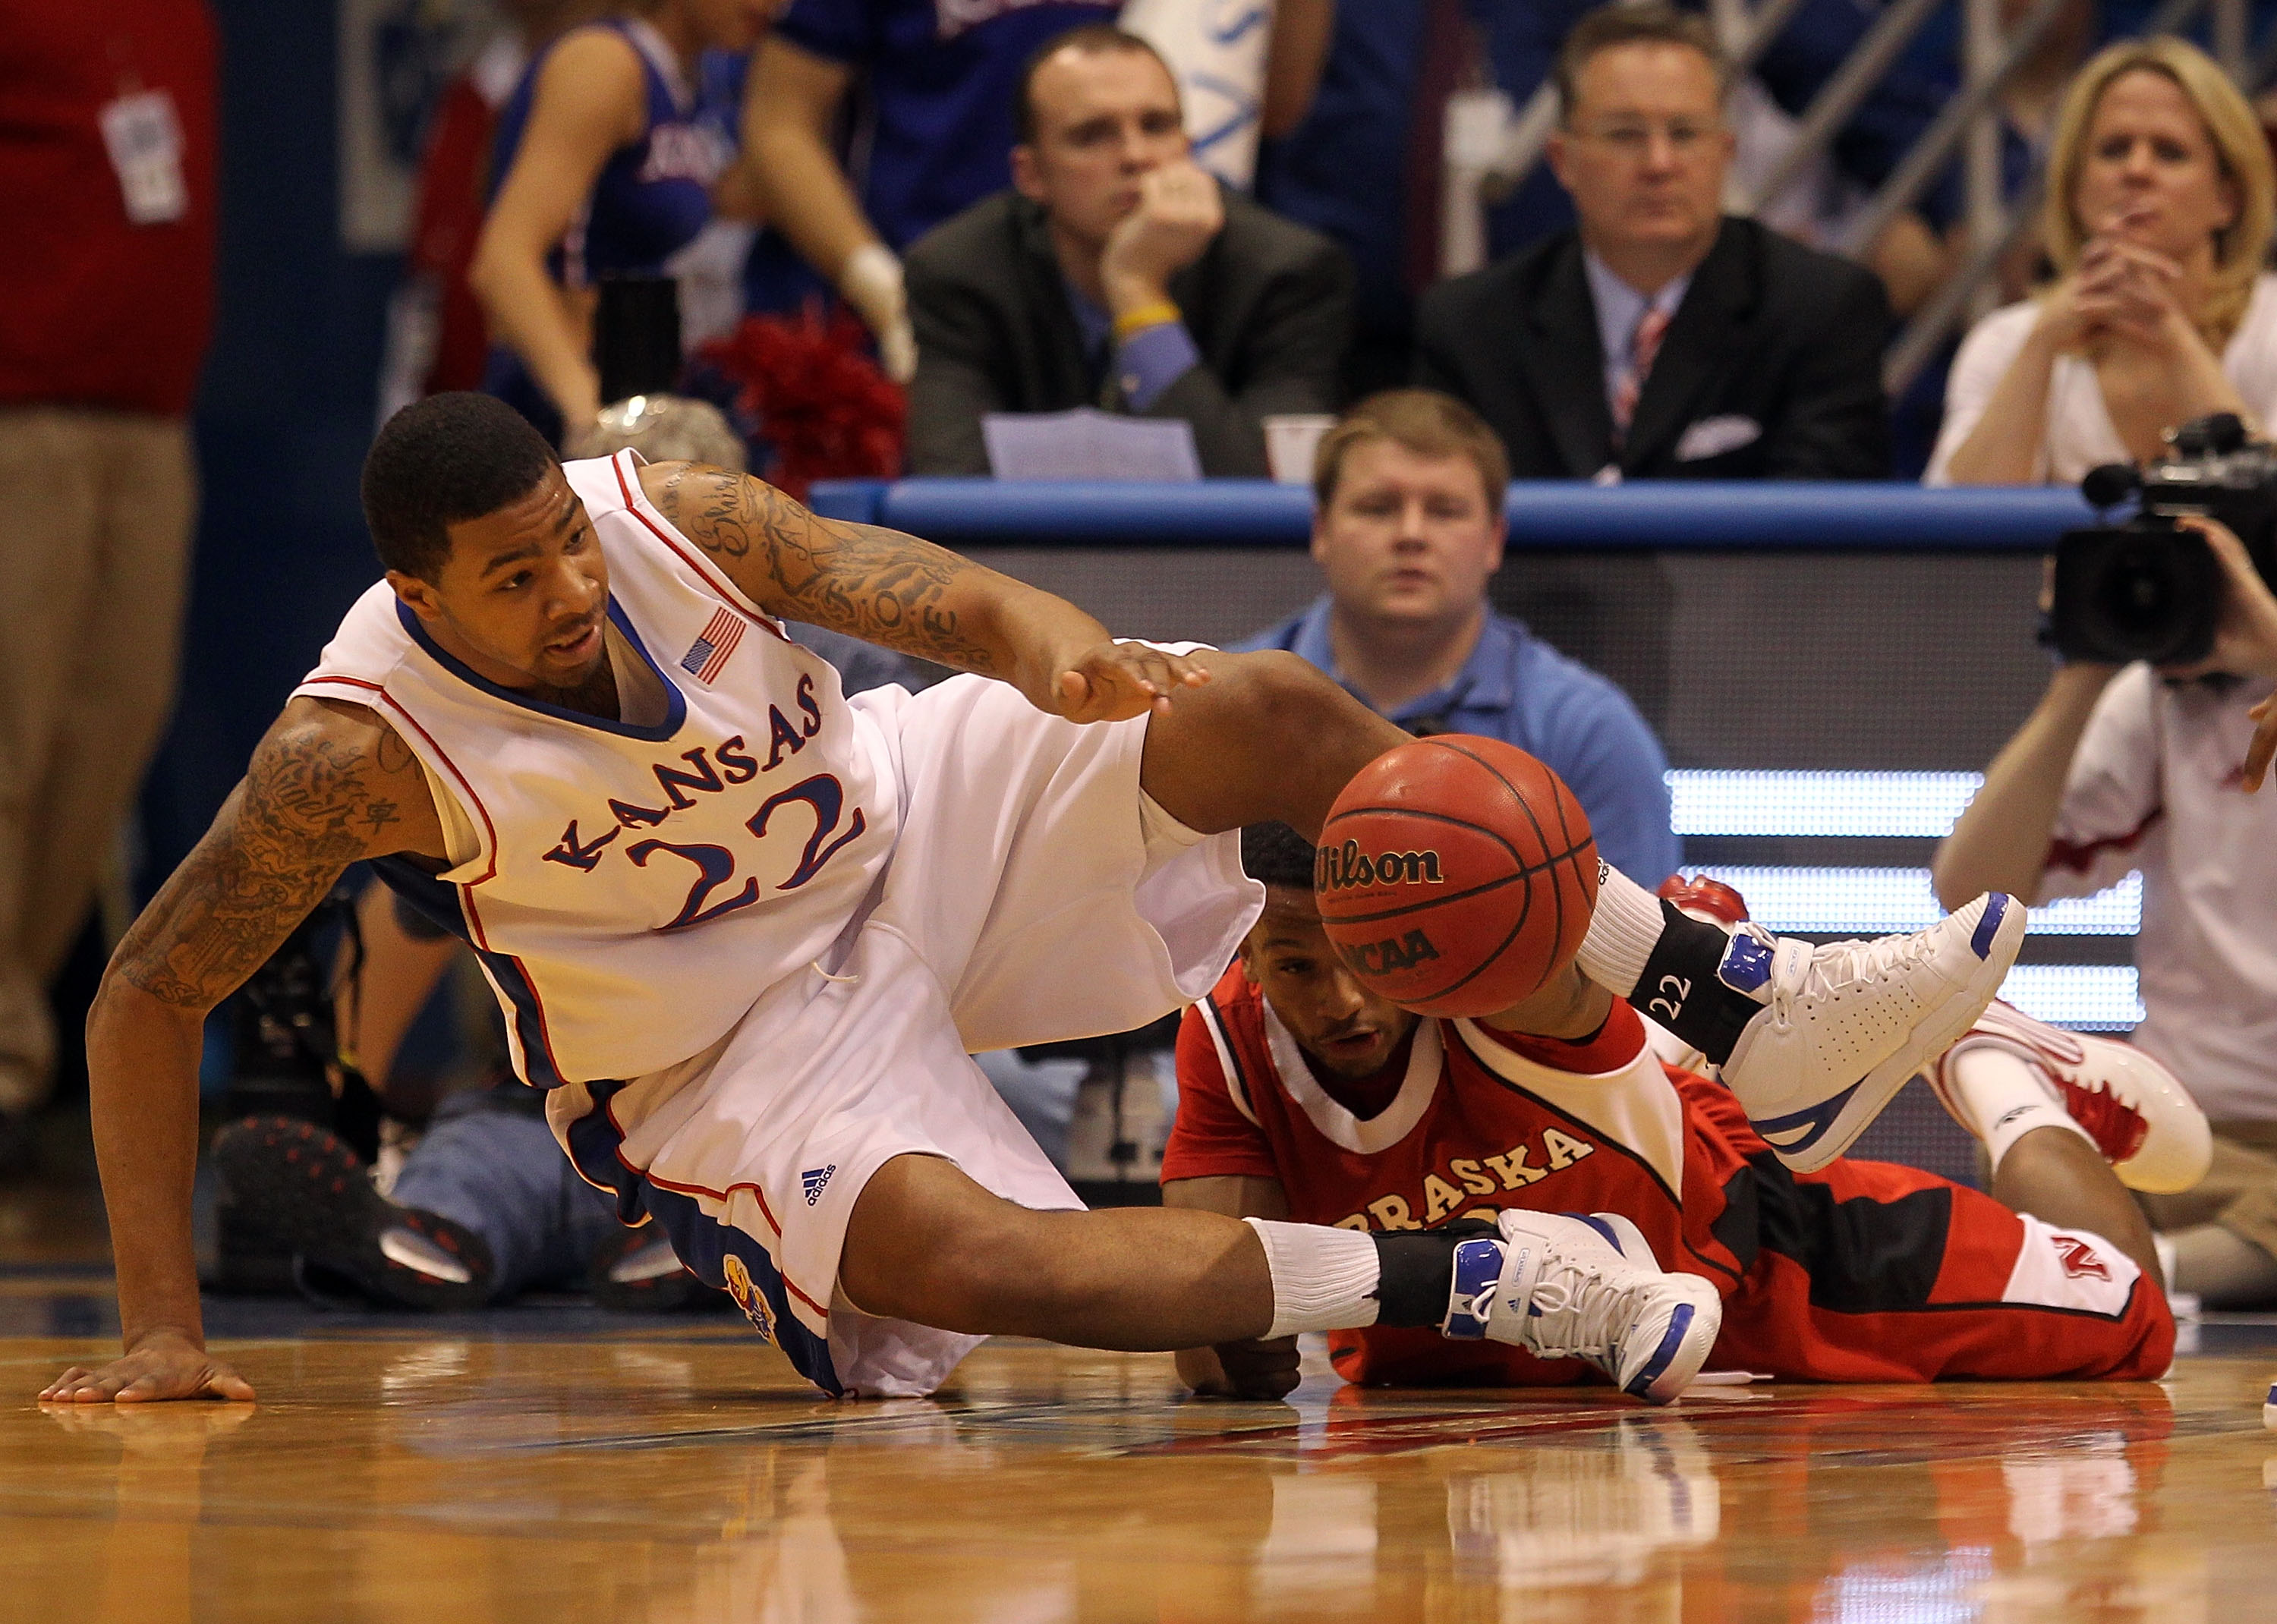 LAWRENCE, KS - FEBRUARY 06:  Marcus Morris #22 of the Kansas Jayhawks and Brandon Richardson #3 of the Nebraska Cornhuskers scramble for a loose ball during the game on February 6, 2010 at Allen Fieldhouse in Lawrence, Kansas.  (Photo by Jamie Squire/Gett